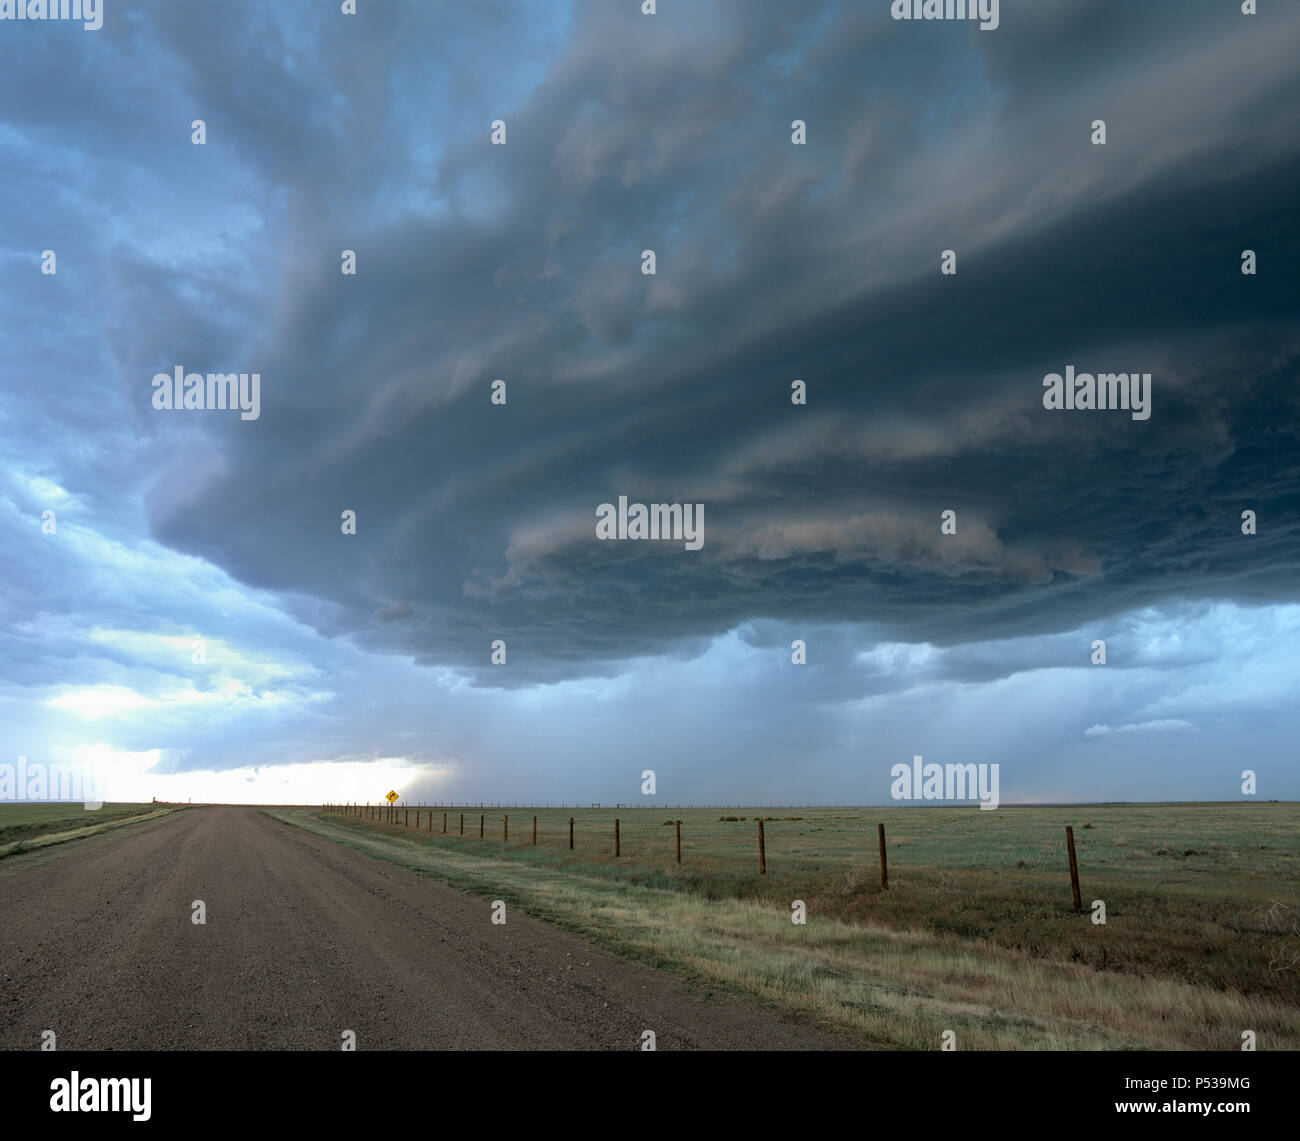 A wall cloud forms under a rotating supercell thunderstorm, over farmland in Nebraska, USA - Stock Image